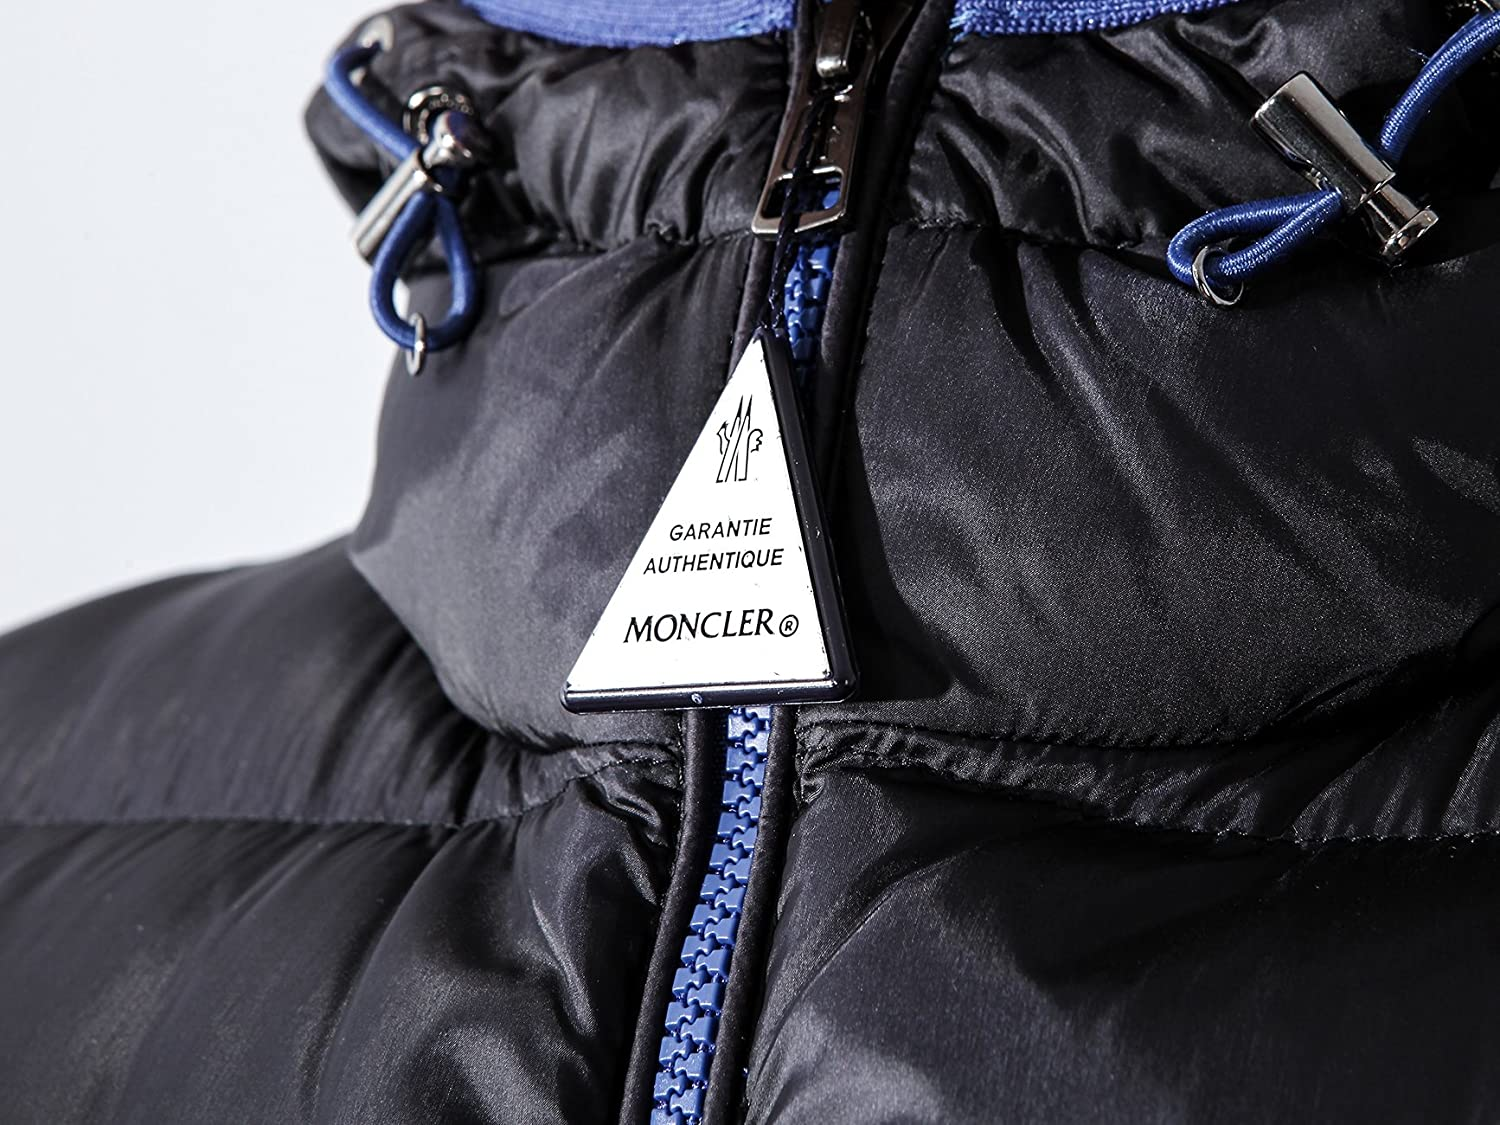 Wiberlux Moncler Chauvon Men's Padded Zip-Front Jacket With Hood - Blue -: Amazon.co.uk: Clothing